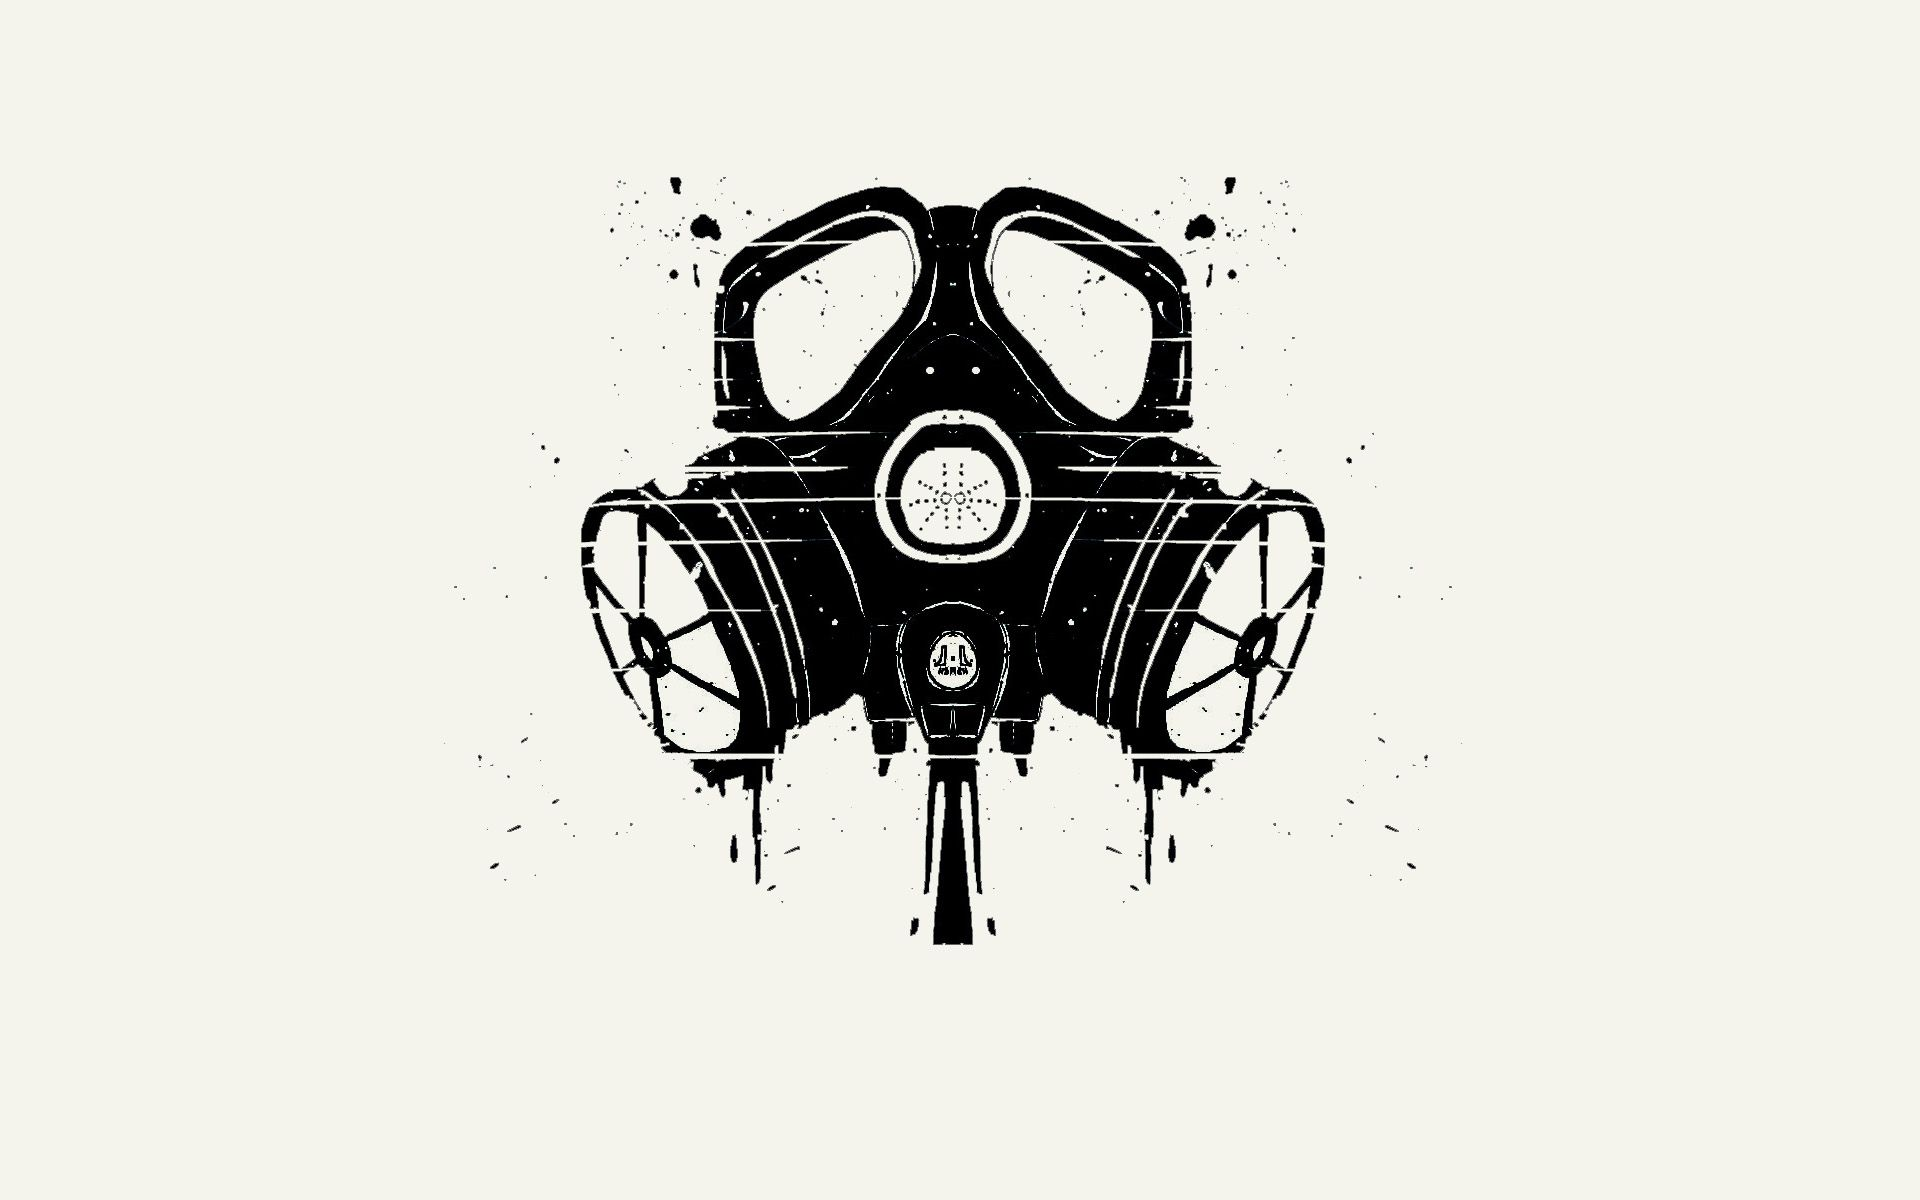 Drag racing gas mask clipart png royalty free cool gas masks Car Tuning | Art Minded | Gas mask art, Masks art ... png royalty free